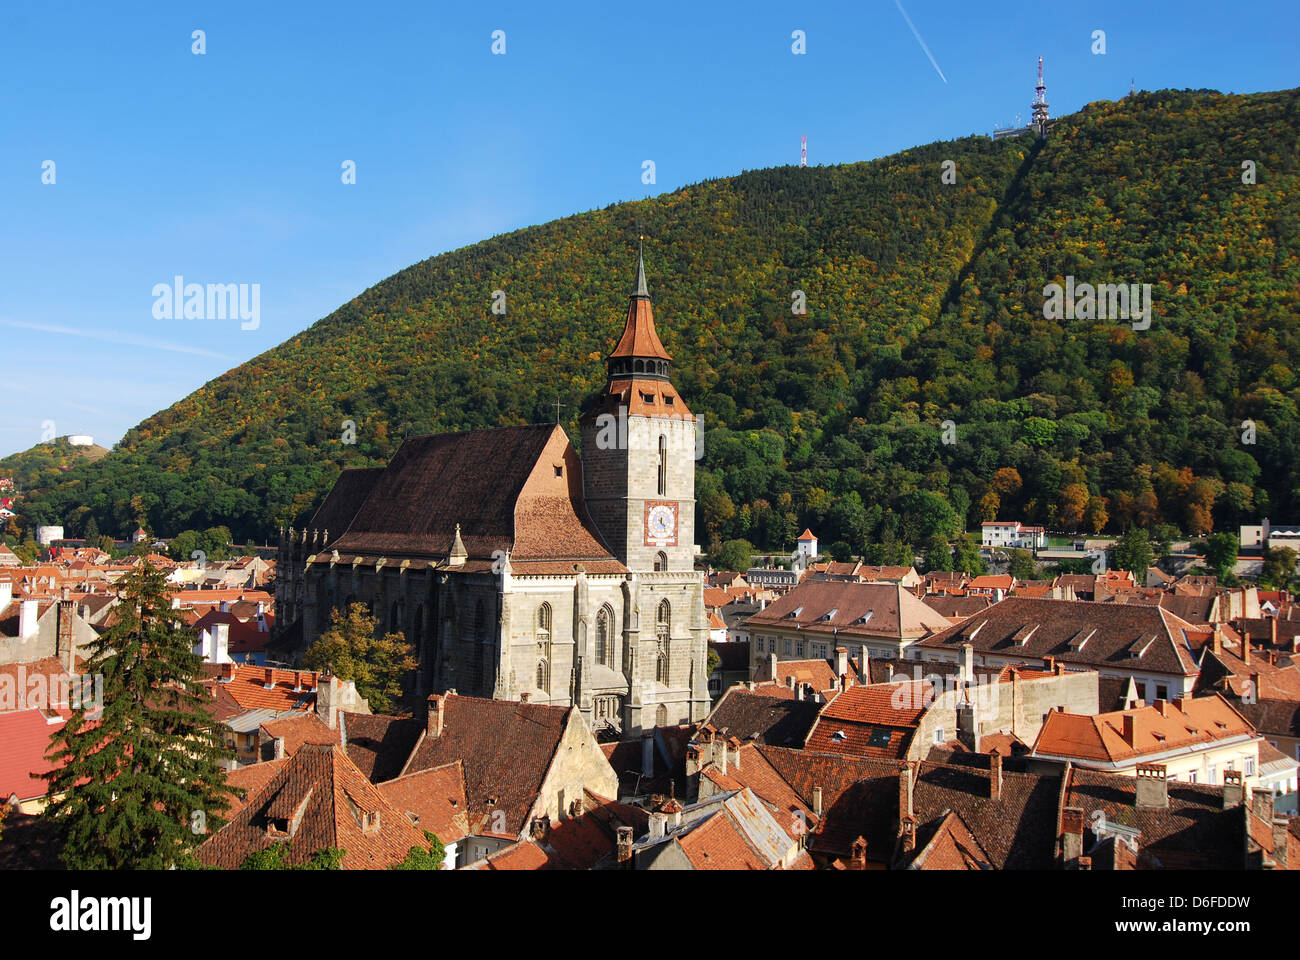 Brasov most important landmark, the Black Church, the largest Gothic in Eastern Europa, towers over the old town. - Stock Image